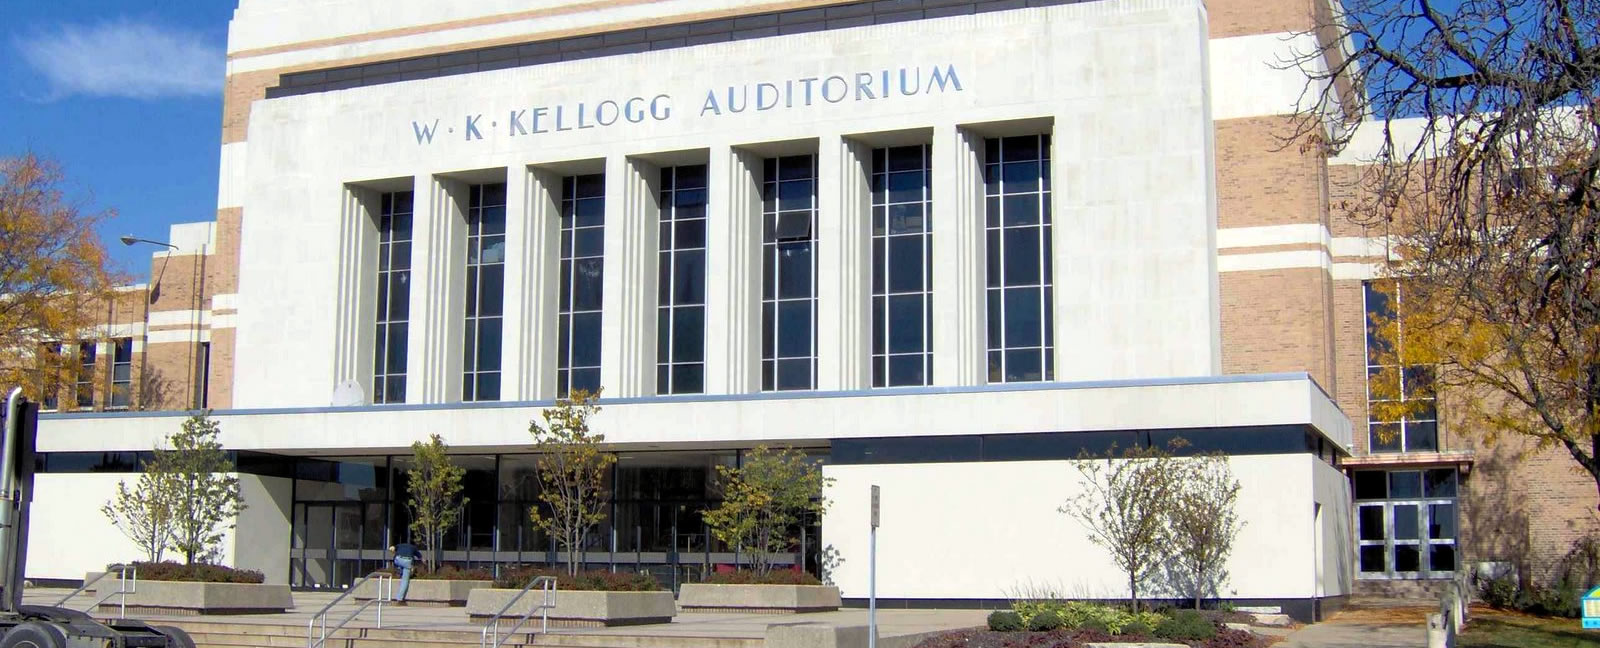 W K Kellogg Auditorium – by Robert Maihofer II